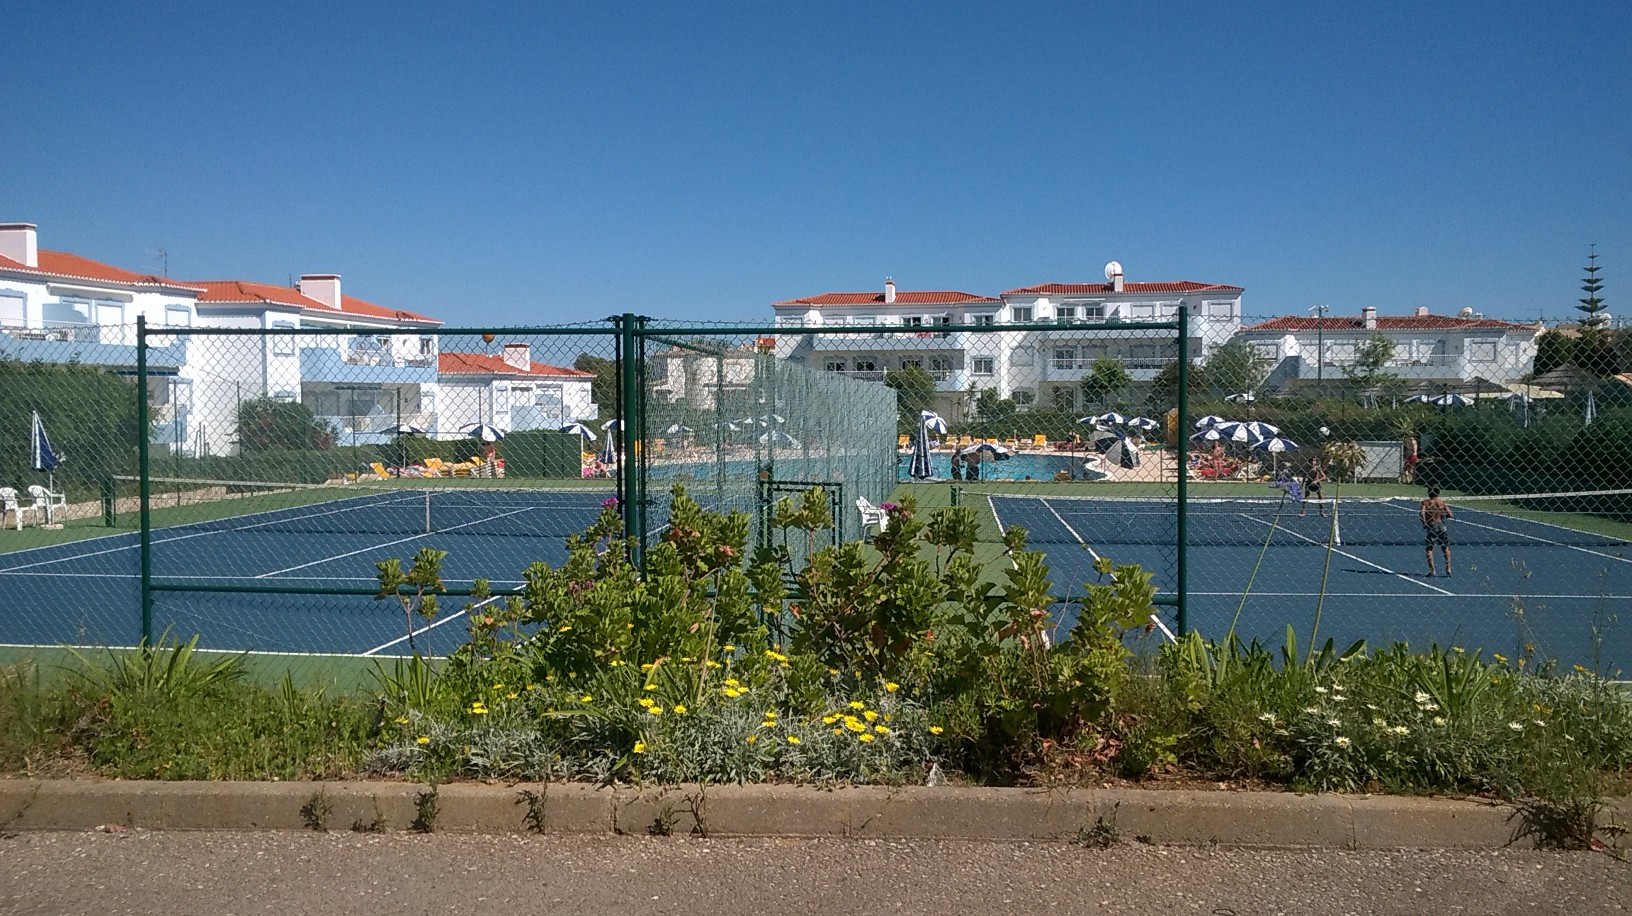 Oasis Tennis courts